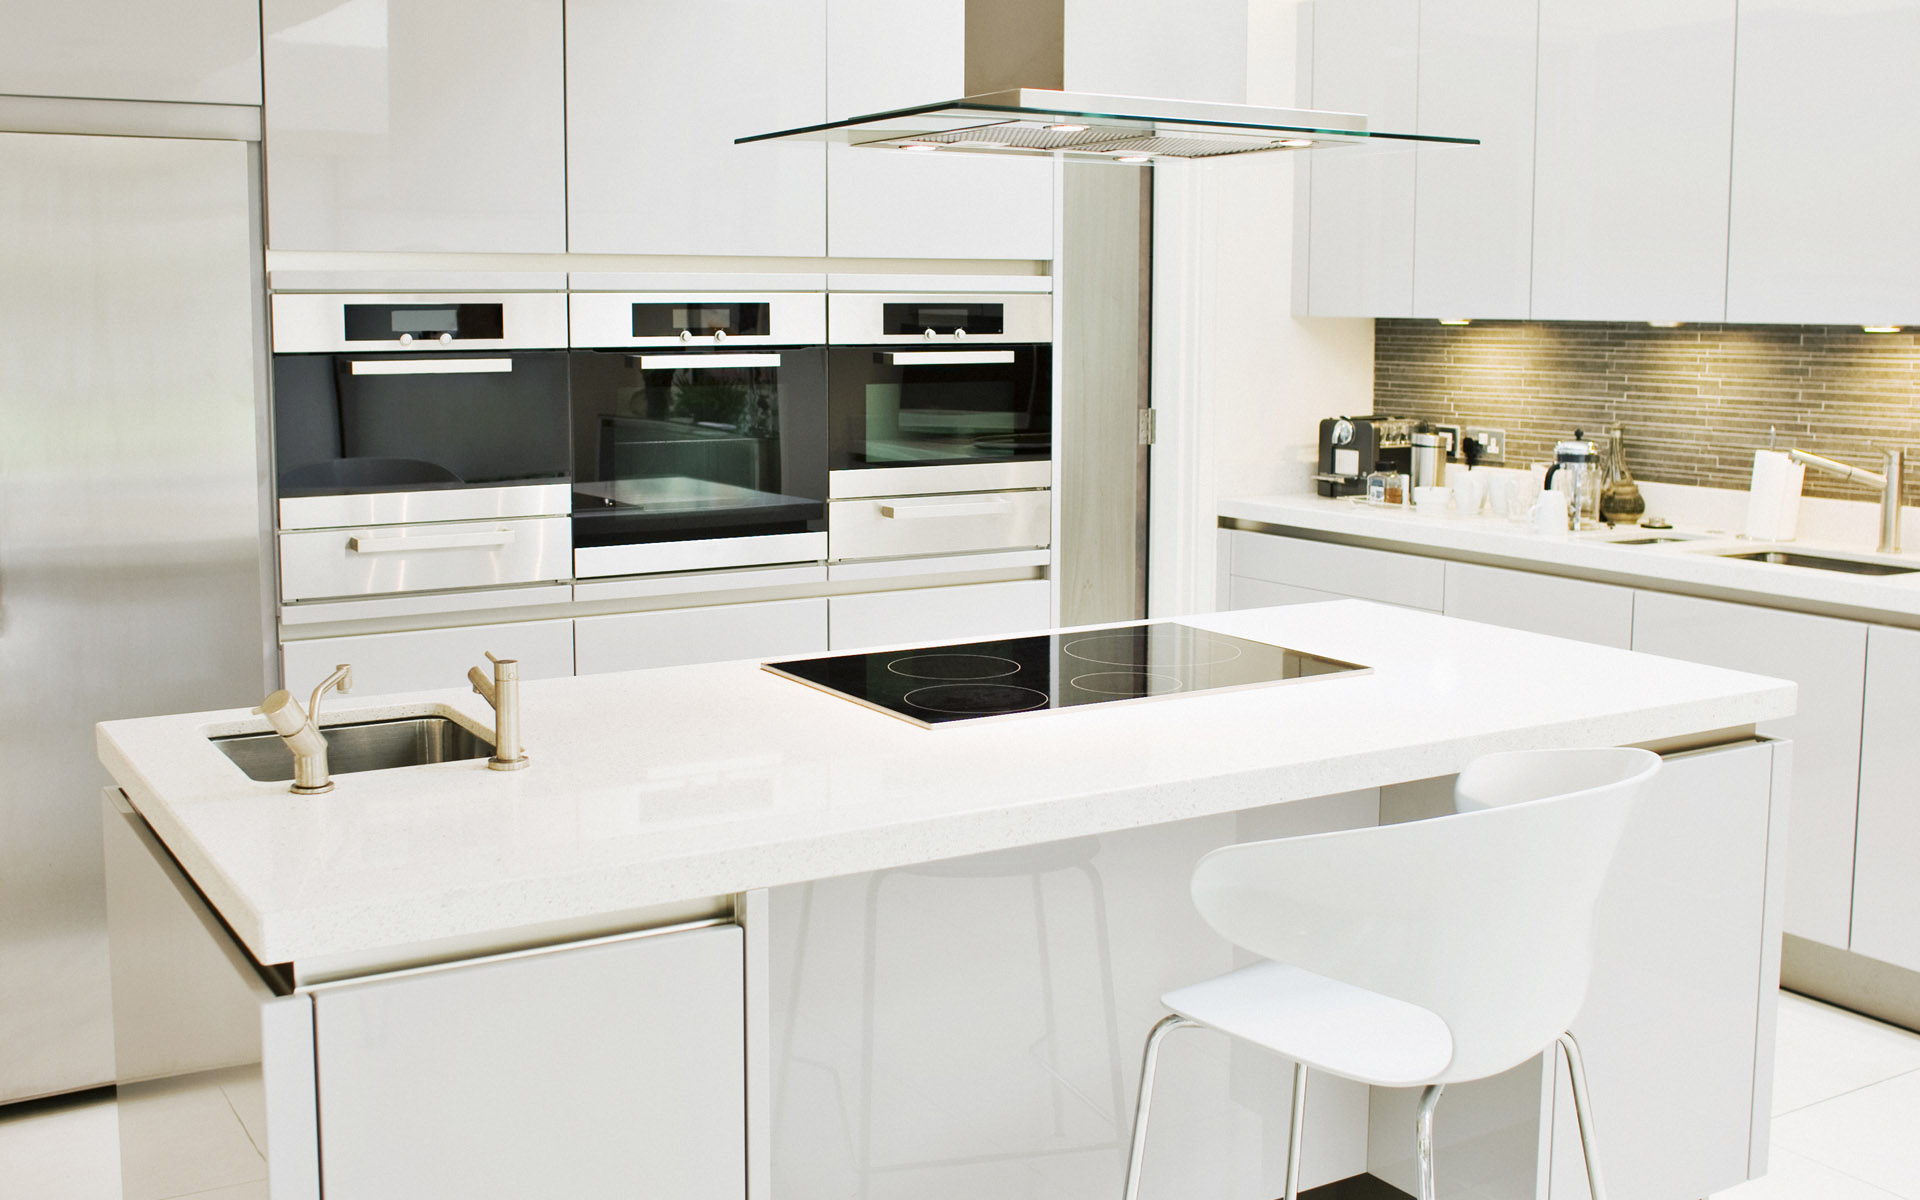 Modern White Kitchen Cabinets facing Amusing Counter plus Electric Stove and Tiny Barstools on Floor